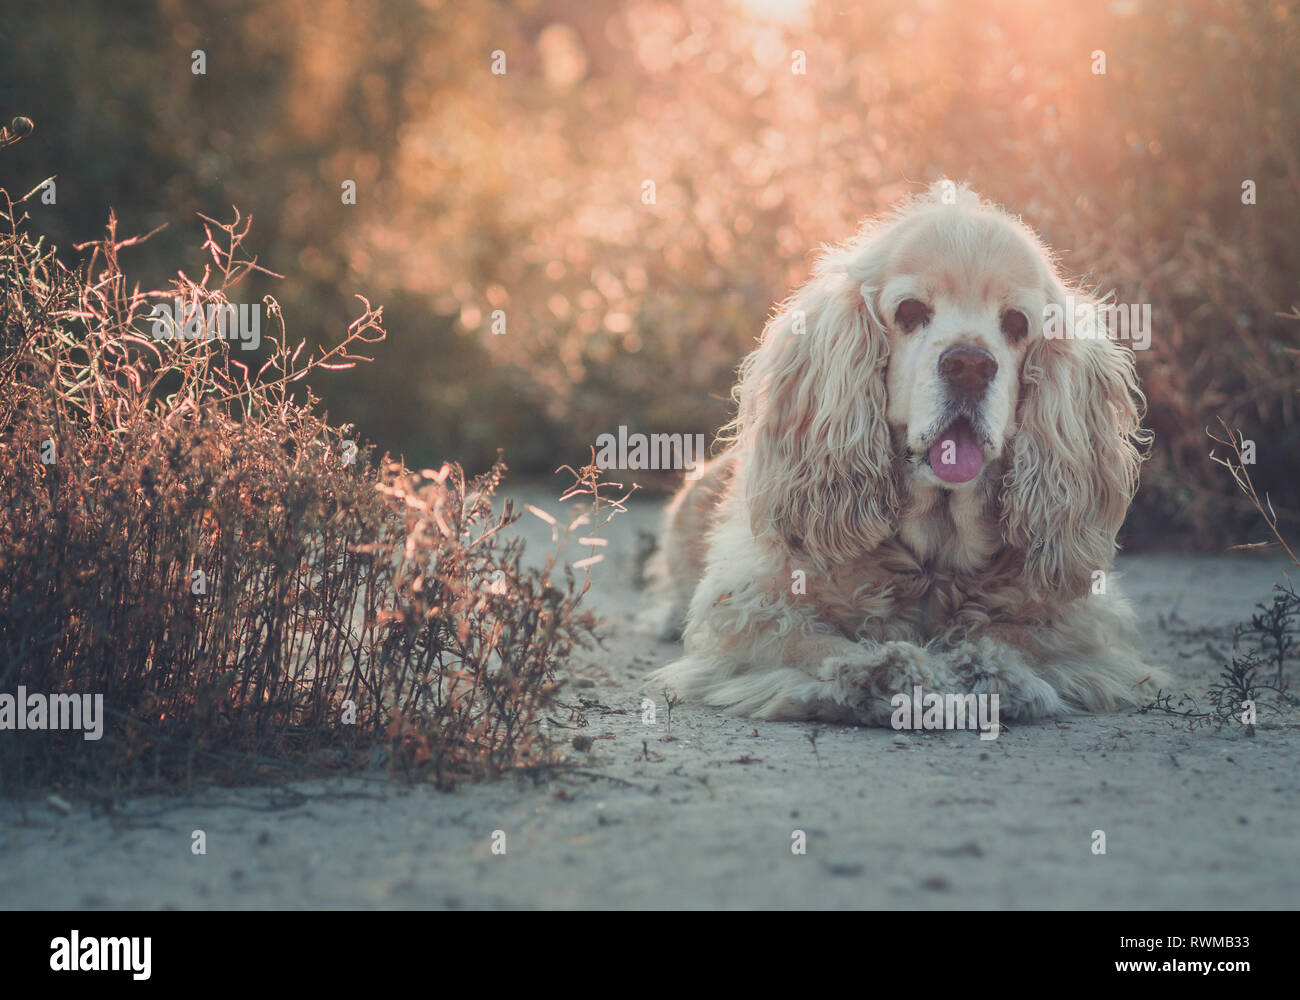 Beautiful funny Cocker resting on soil between plants at sunset on blurred background - Stock Image